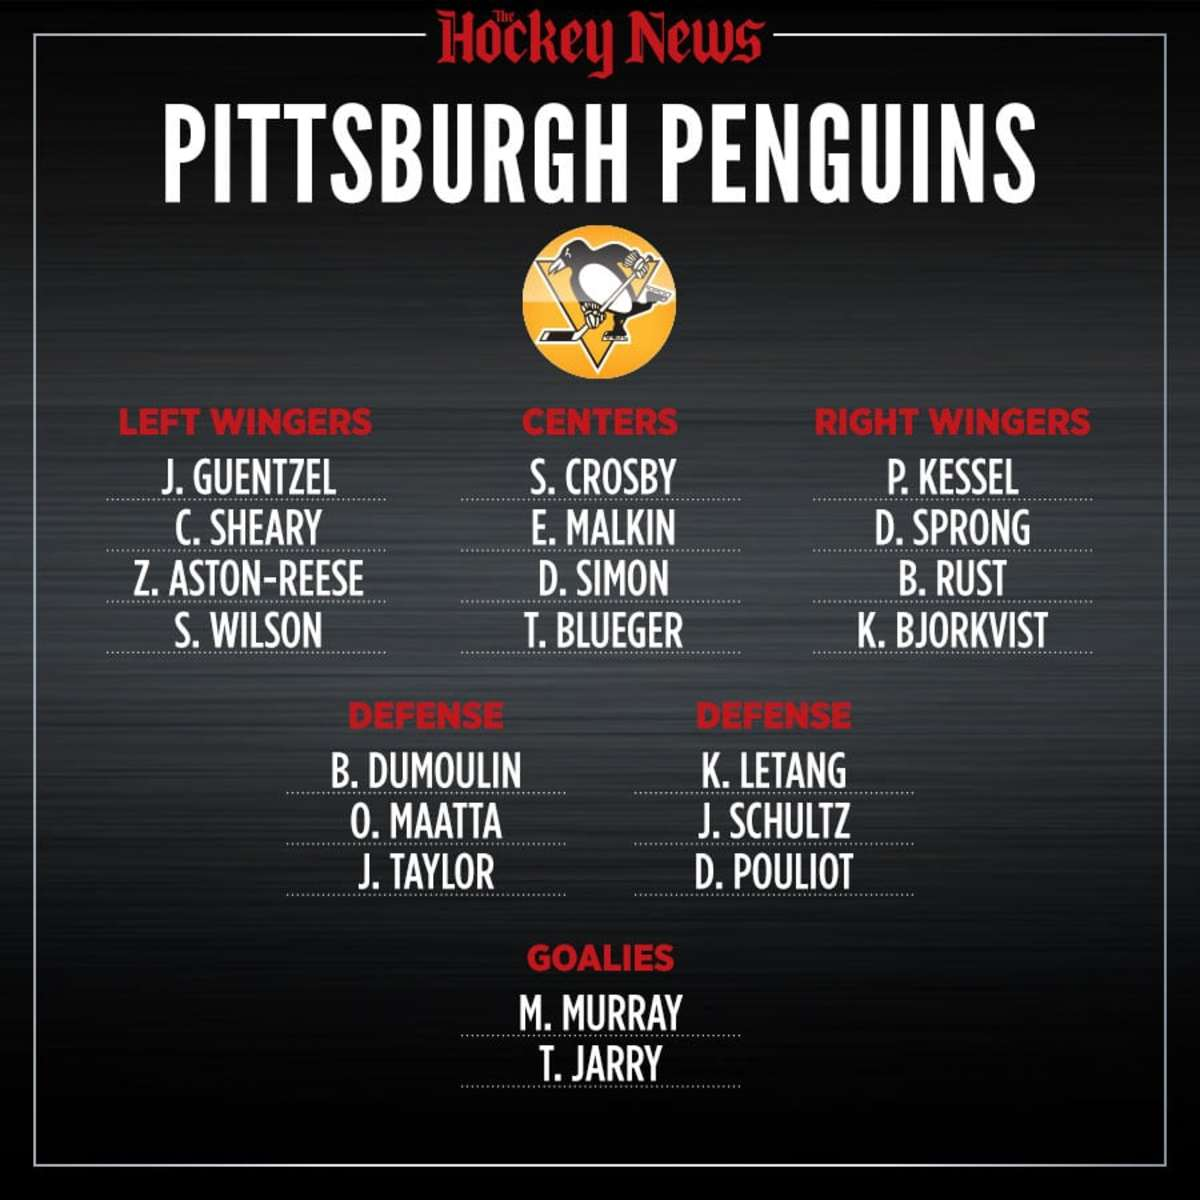 Penguins Schedule 2020.2020 Vision What The Pittsburgh Penguins Will Look Like In